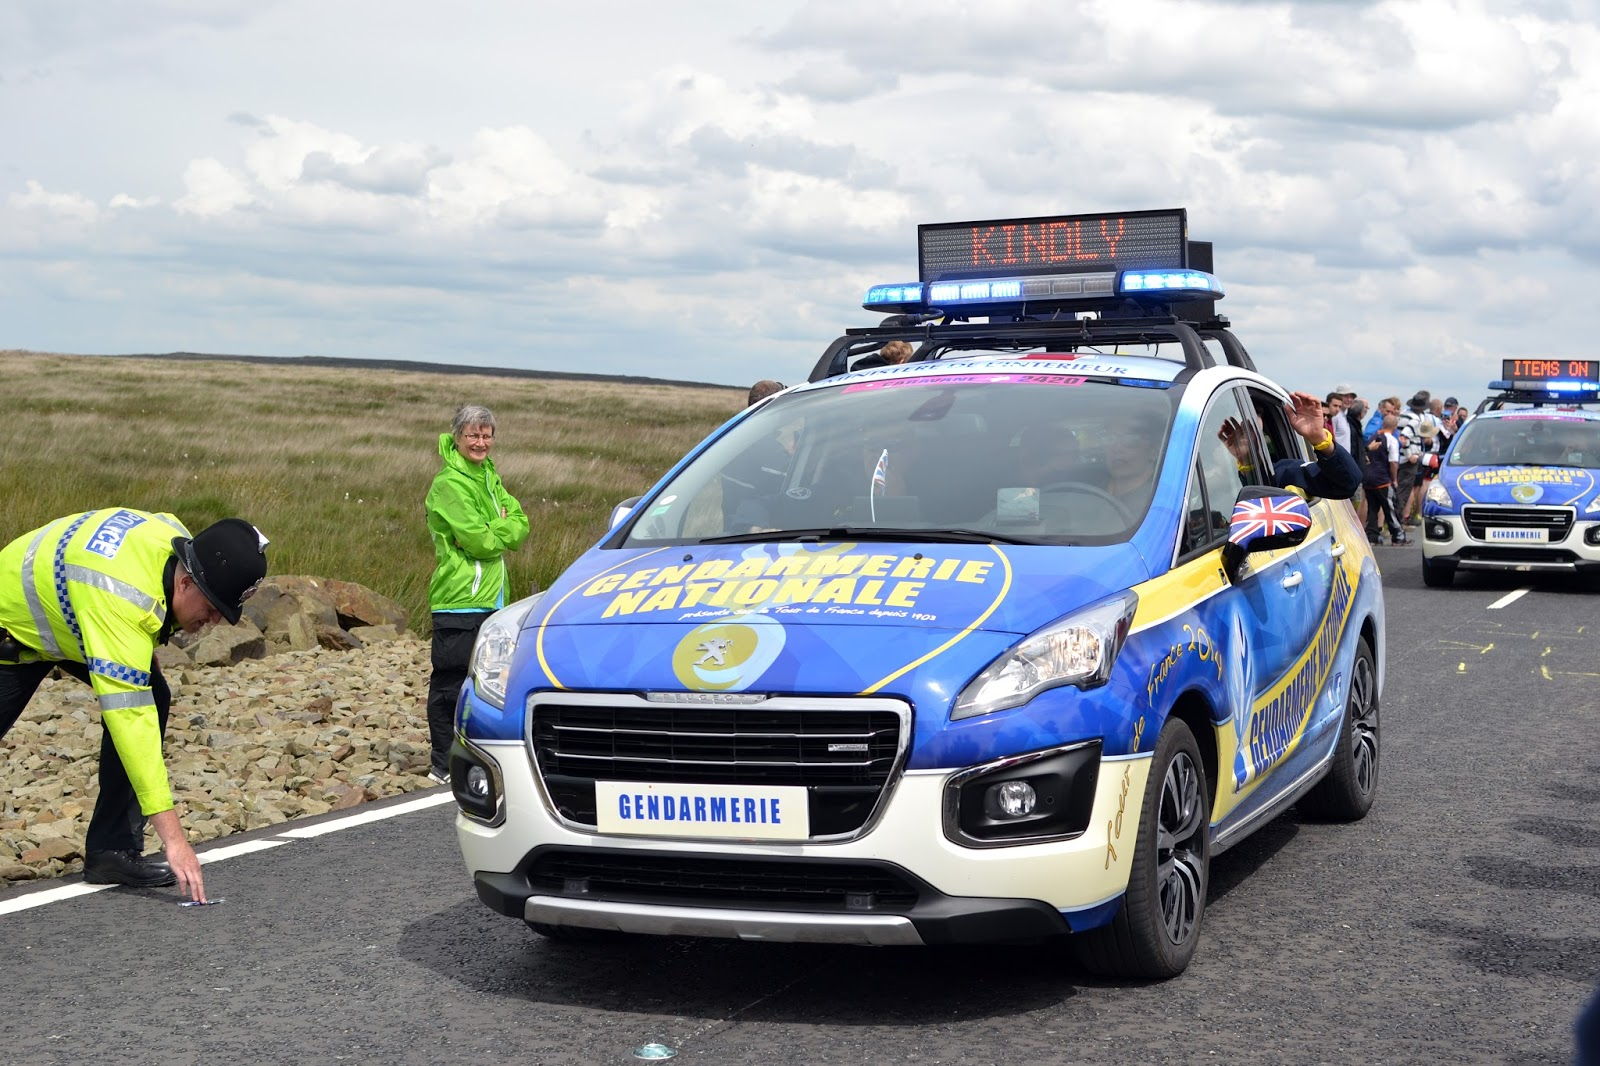 gendarmerie, caravan, le tour de france, le tour, the tour de france, team sky, peloton, yorkshire, lancashire, tour de yorkshire, blackstone edge, cycling, velo, littleborough, greater manchester, rochdale, cragg vale, north west, TDF, 2014, bikes, photography, sport, athletes, cyclists, uk, great Britain, united kingdom, france, french,